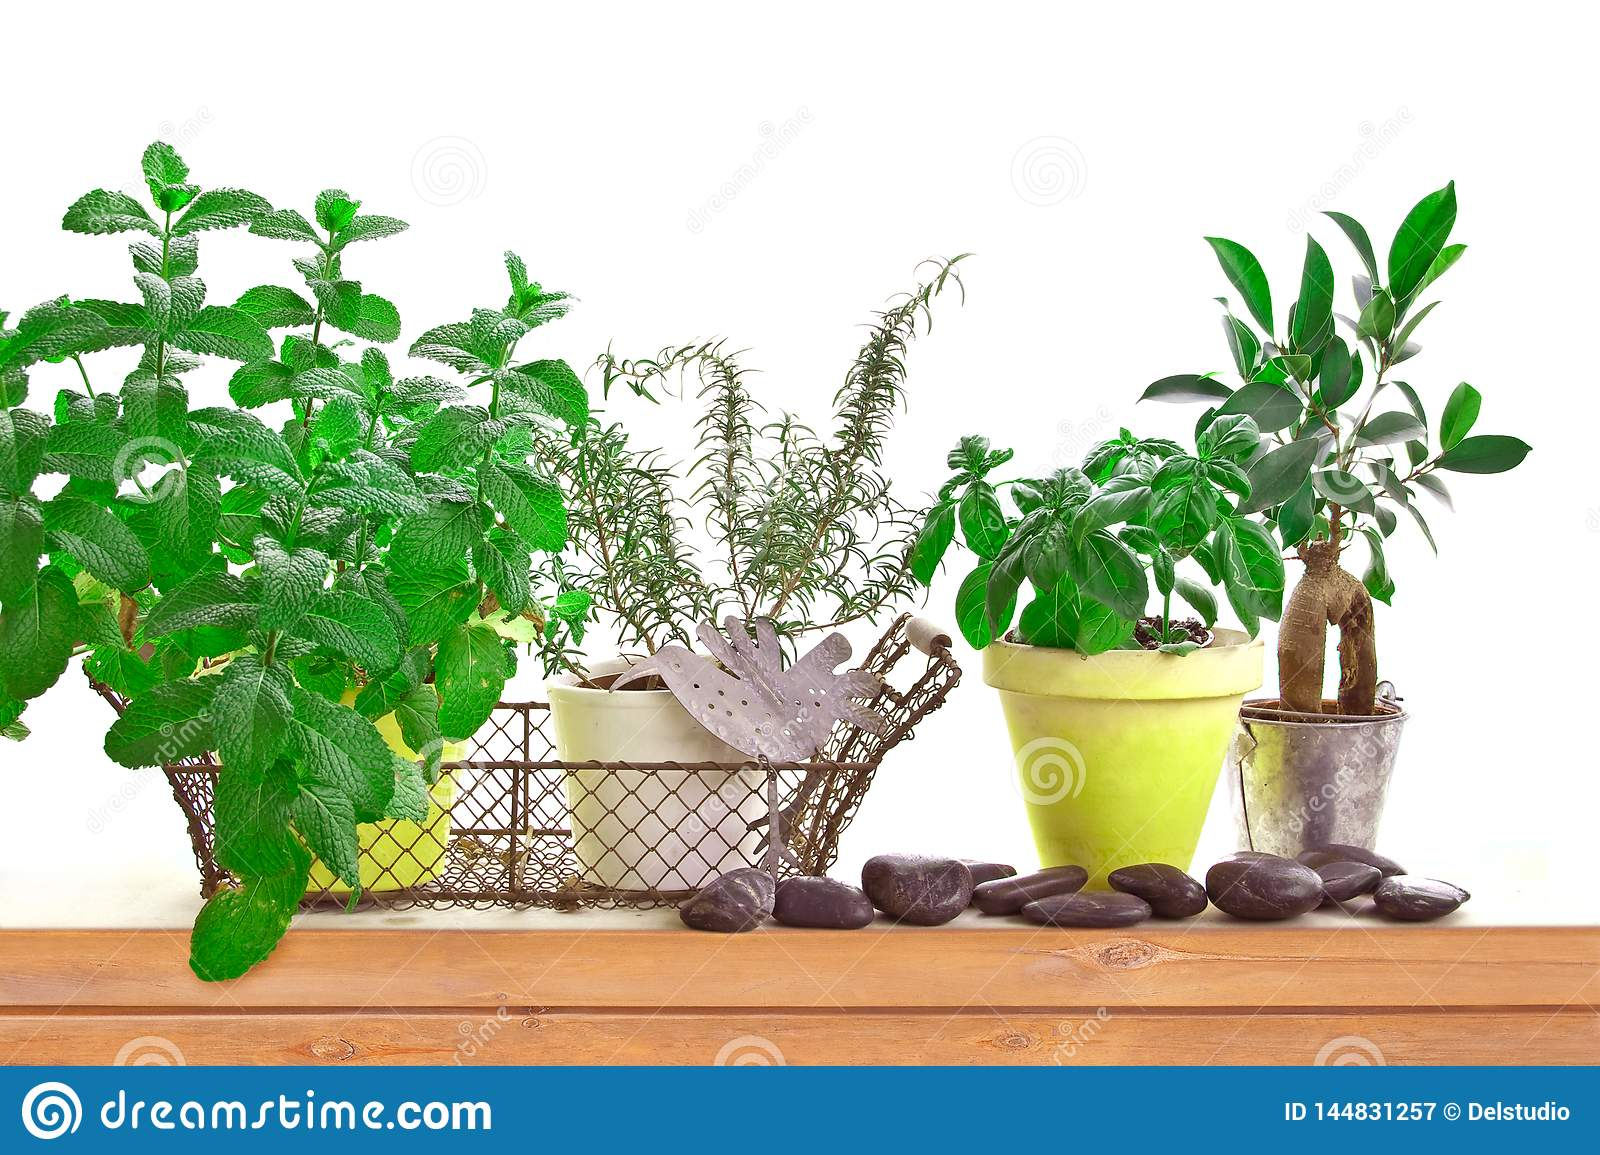 Aromatic Herb Garden With Pots Of Basil And Mint On A Shelf